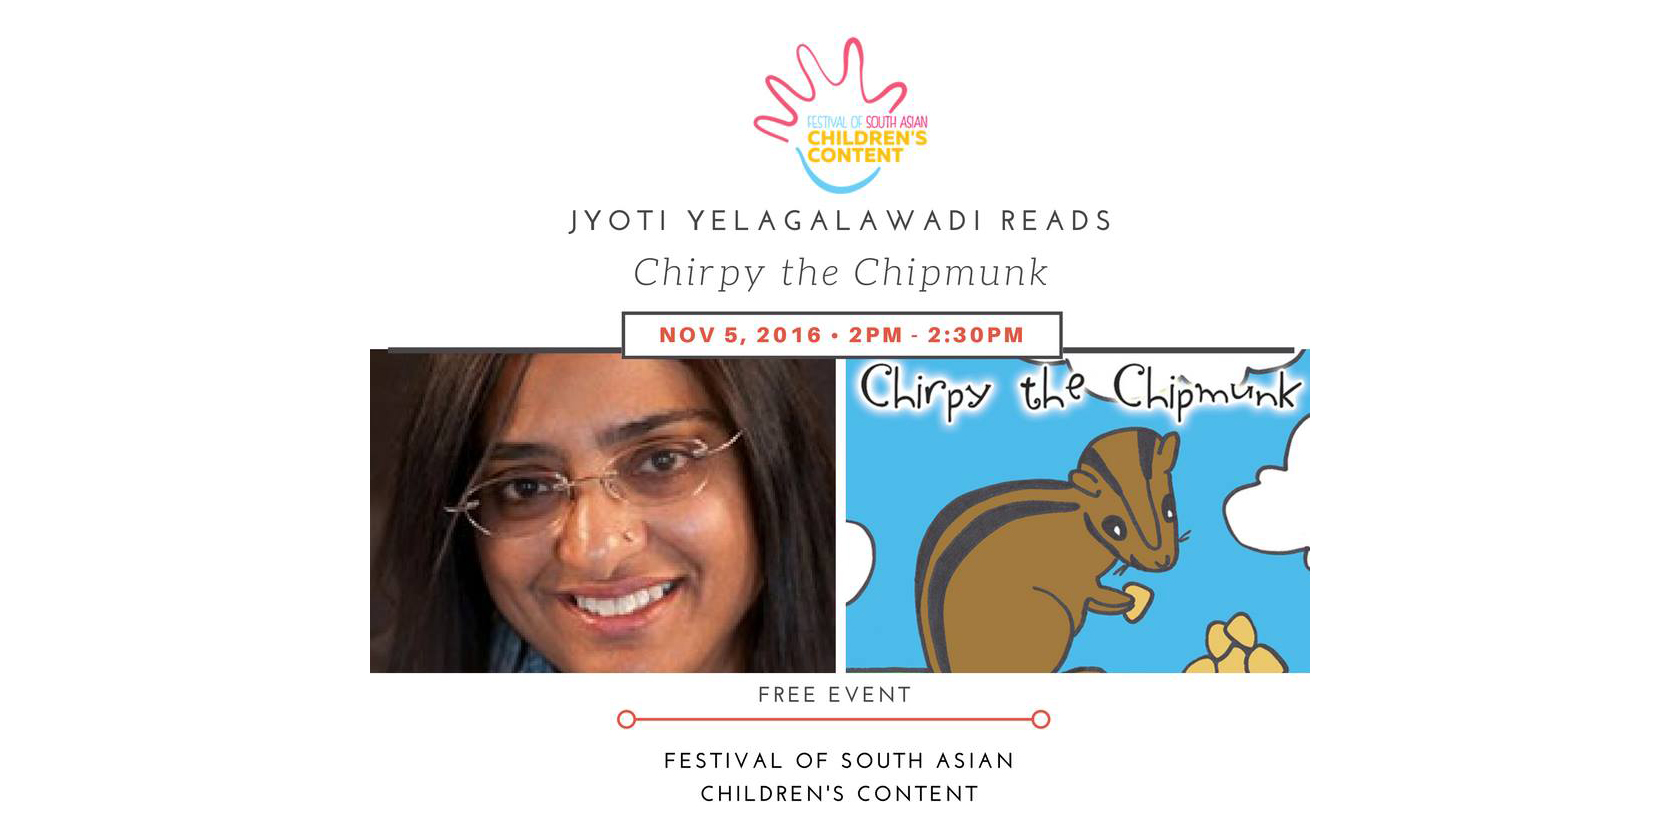 Jyoti Yelagalawadi reads from her chilren's book, Chirpy the Chipmunk